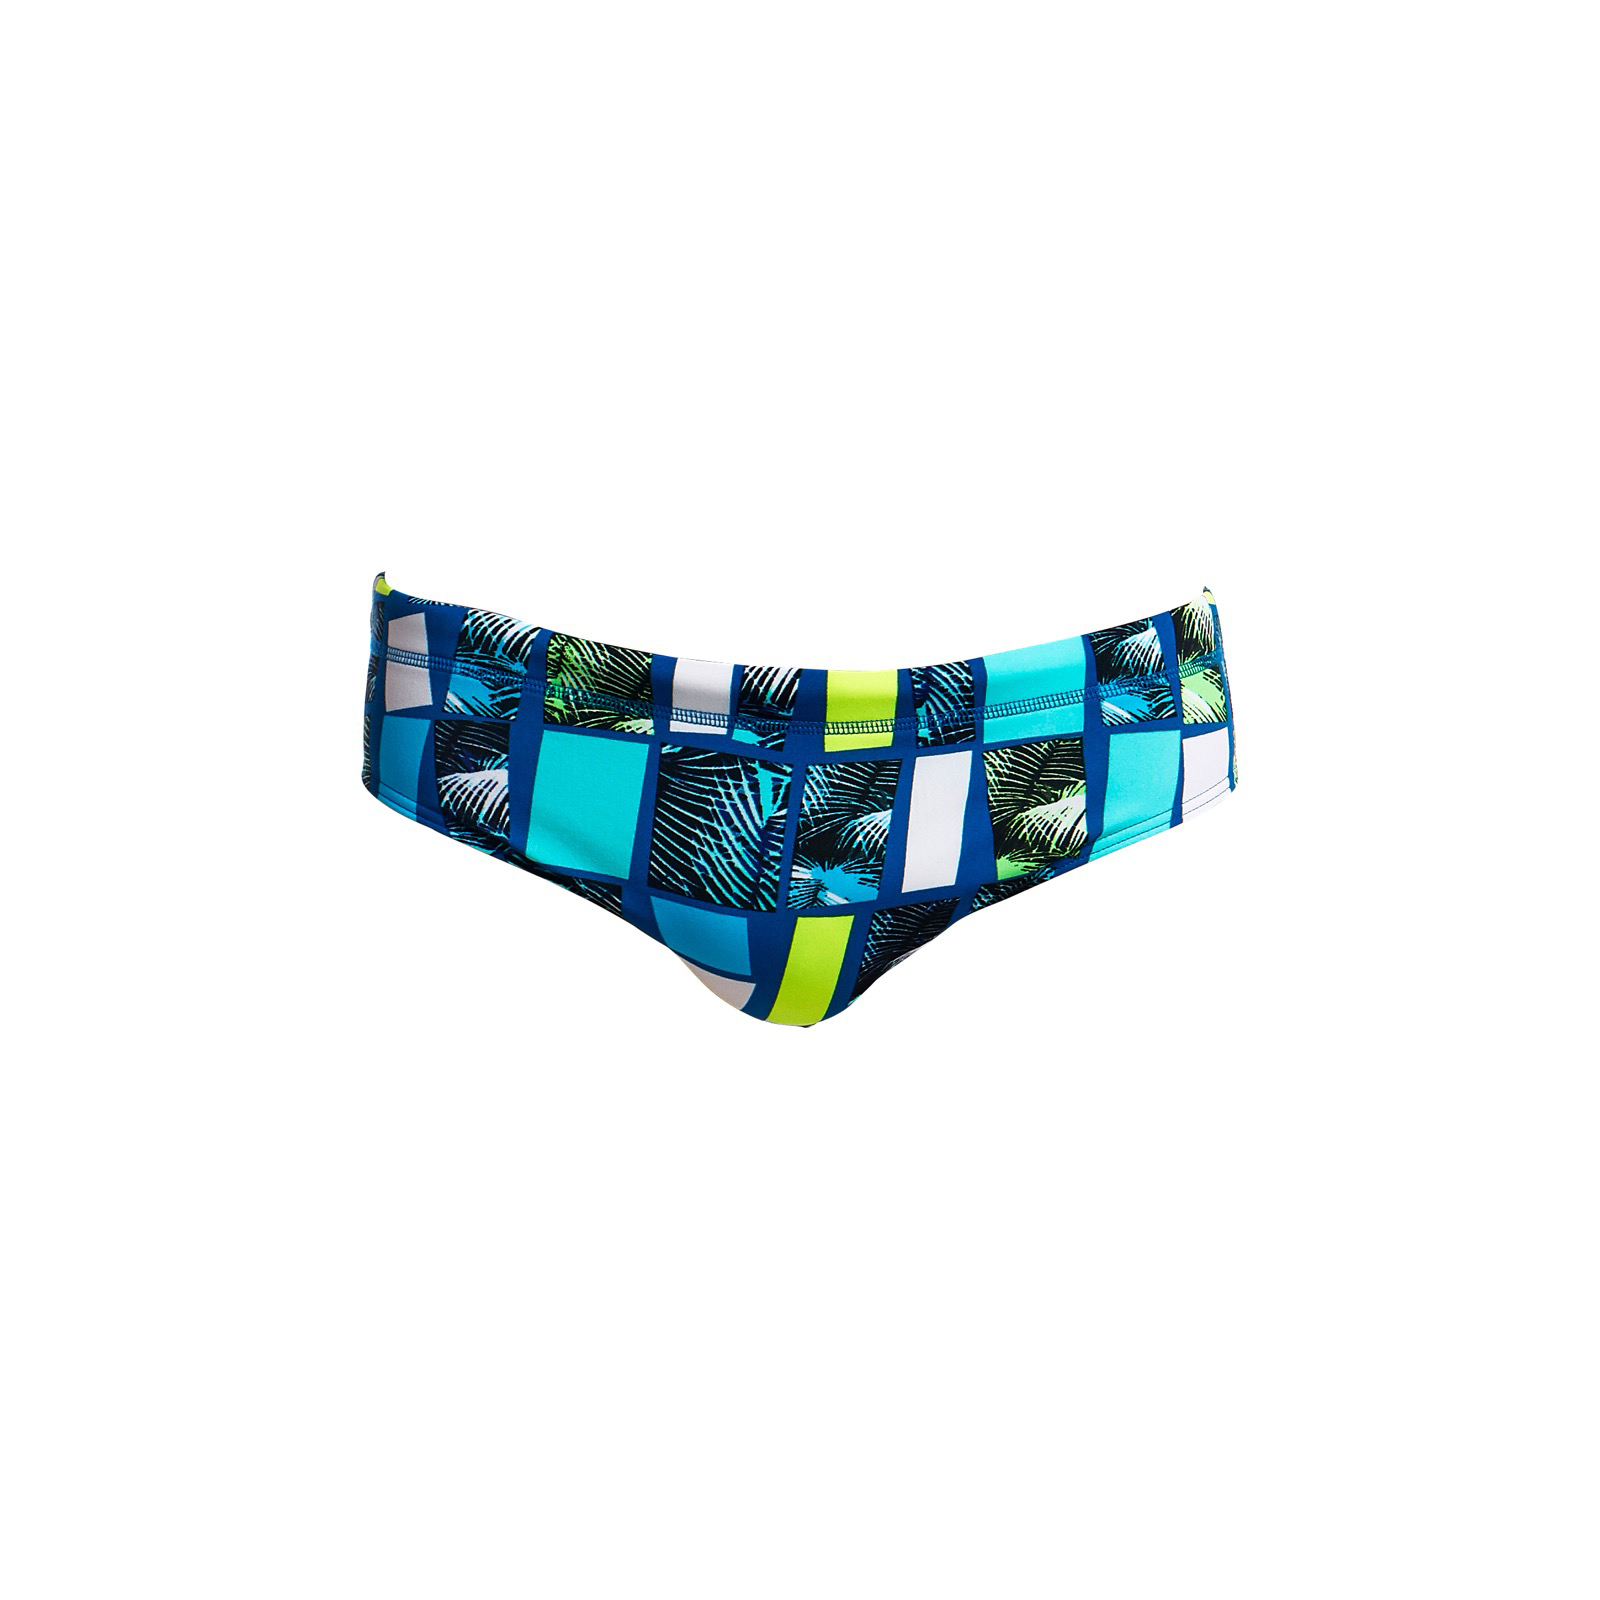 hannover STEFANamMarstall funky trunks herren classic brief tropic tower badehose